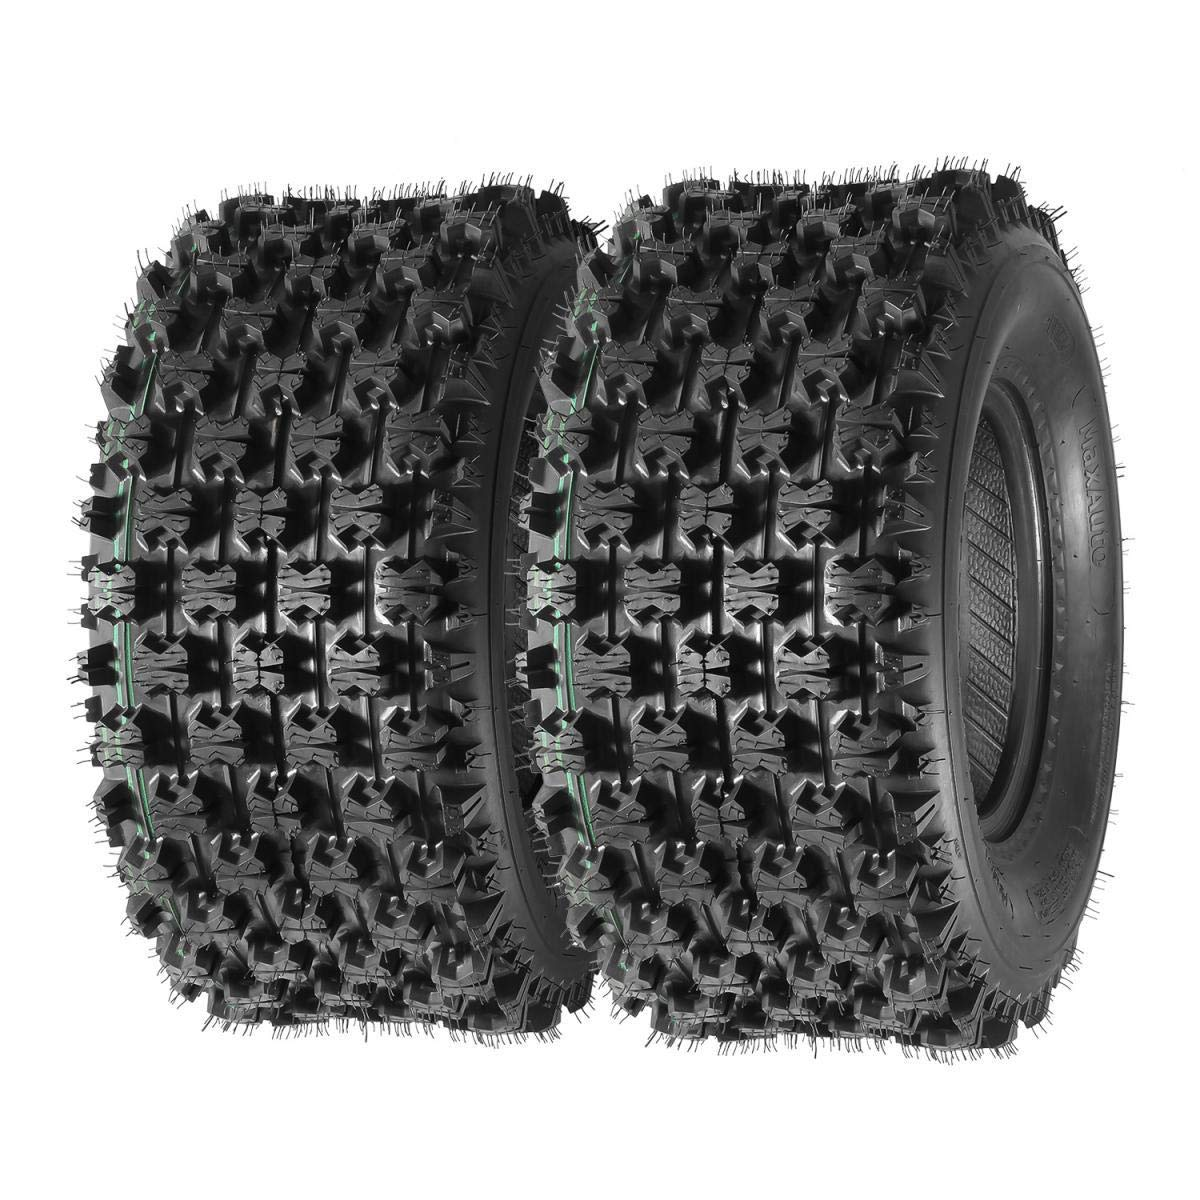 Set of 2 Sport ATV Tires AT 22x10-10 22x10x10 P357 4PR by MaxAuto